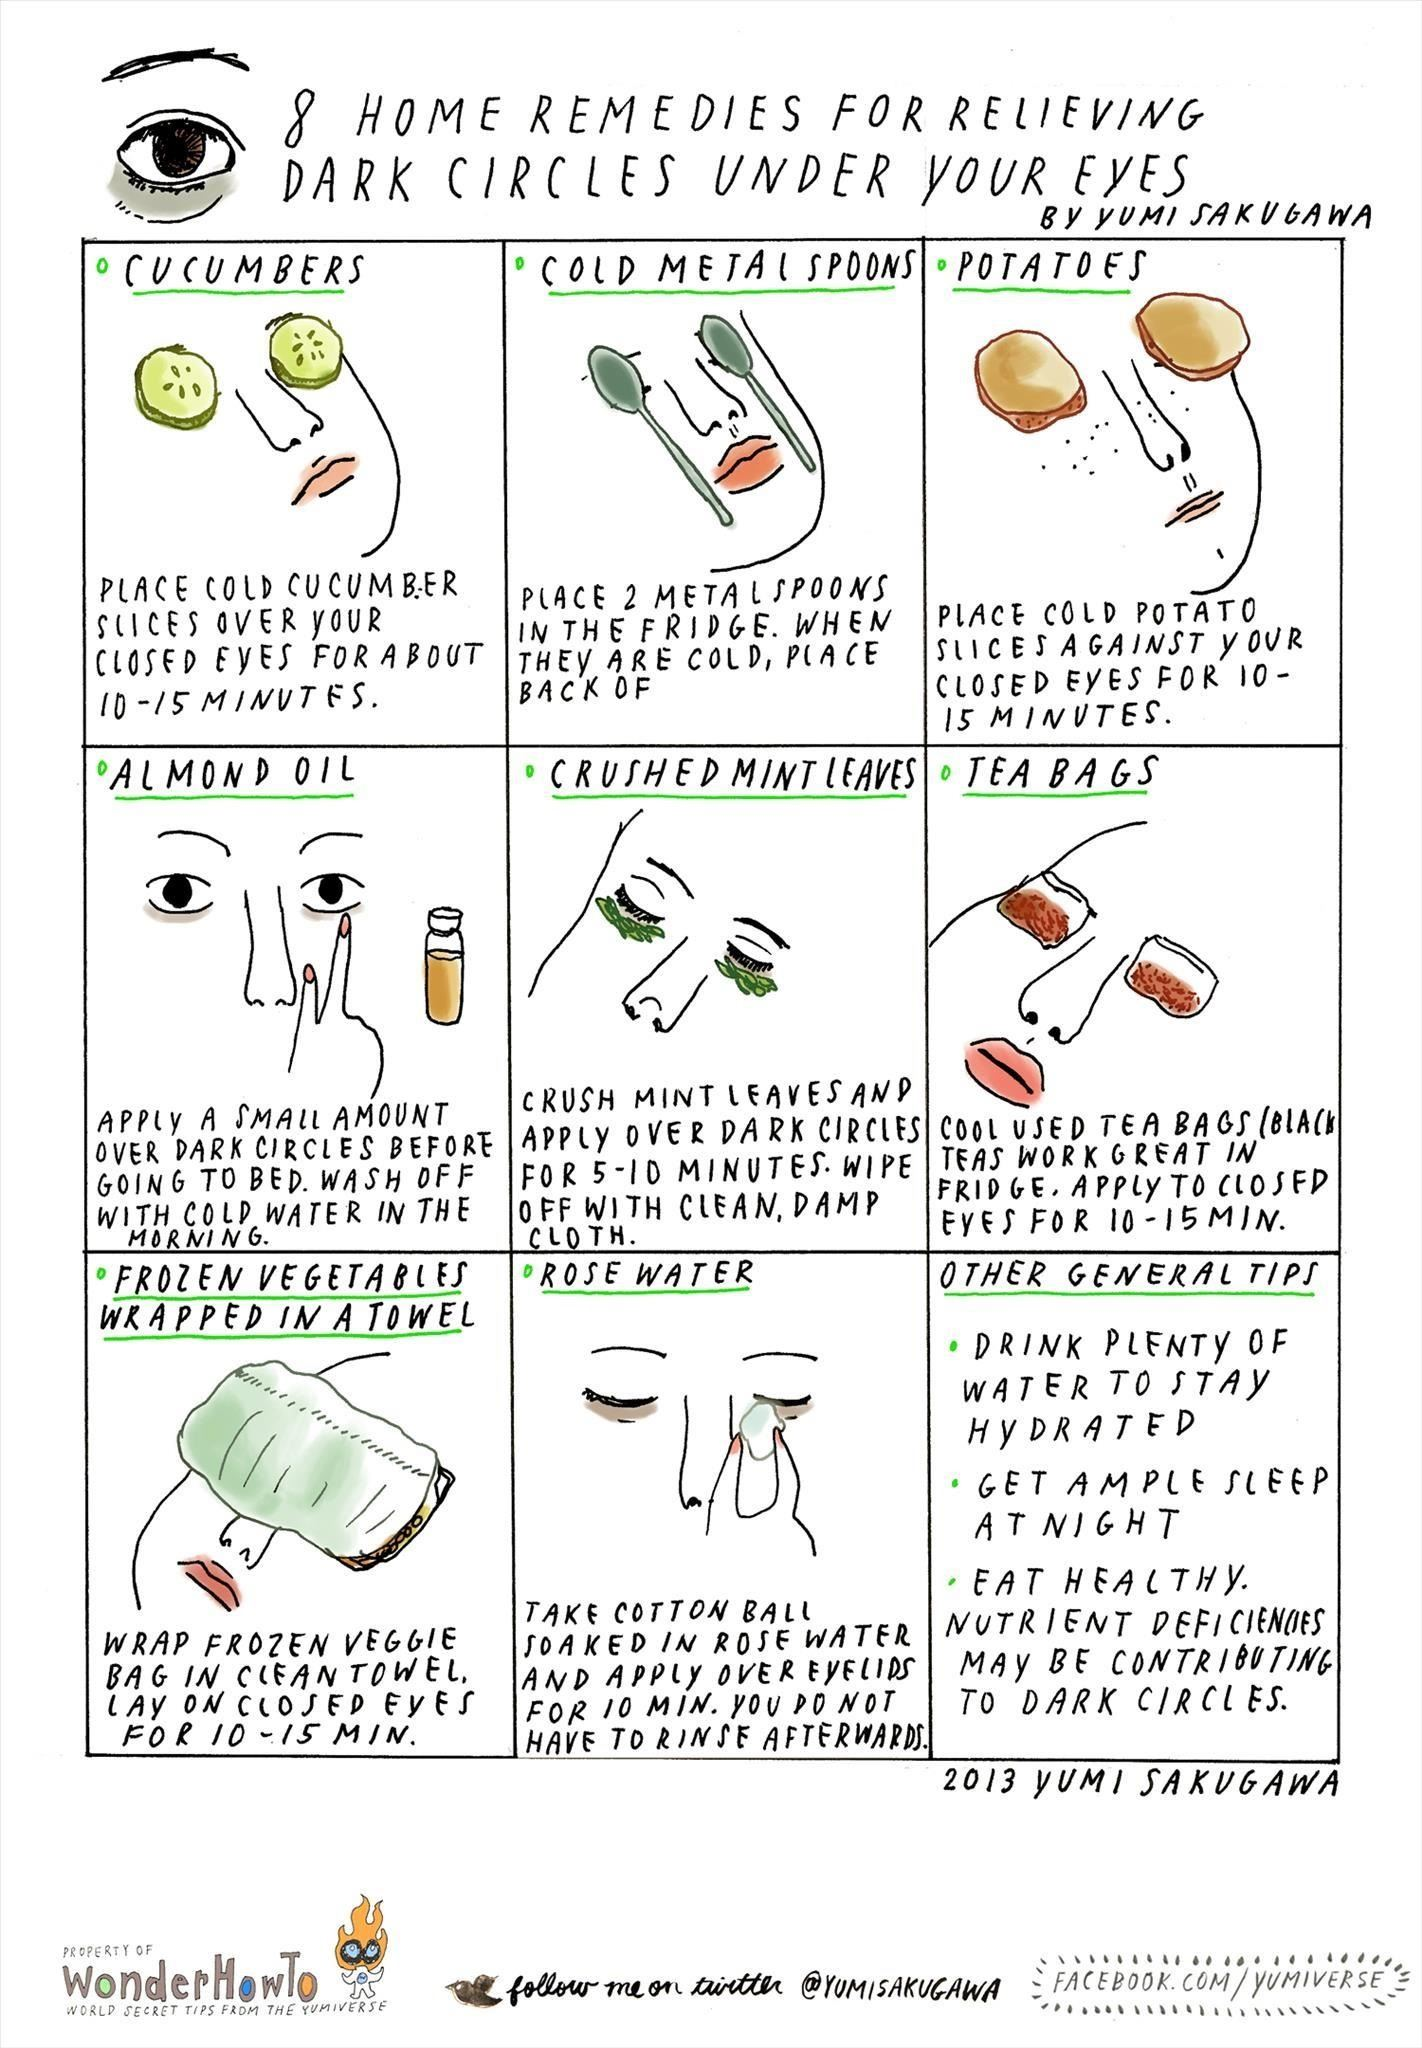 8 Home Remedies That